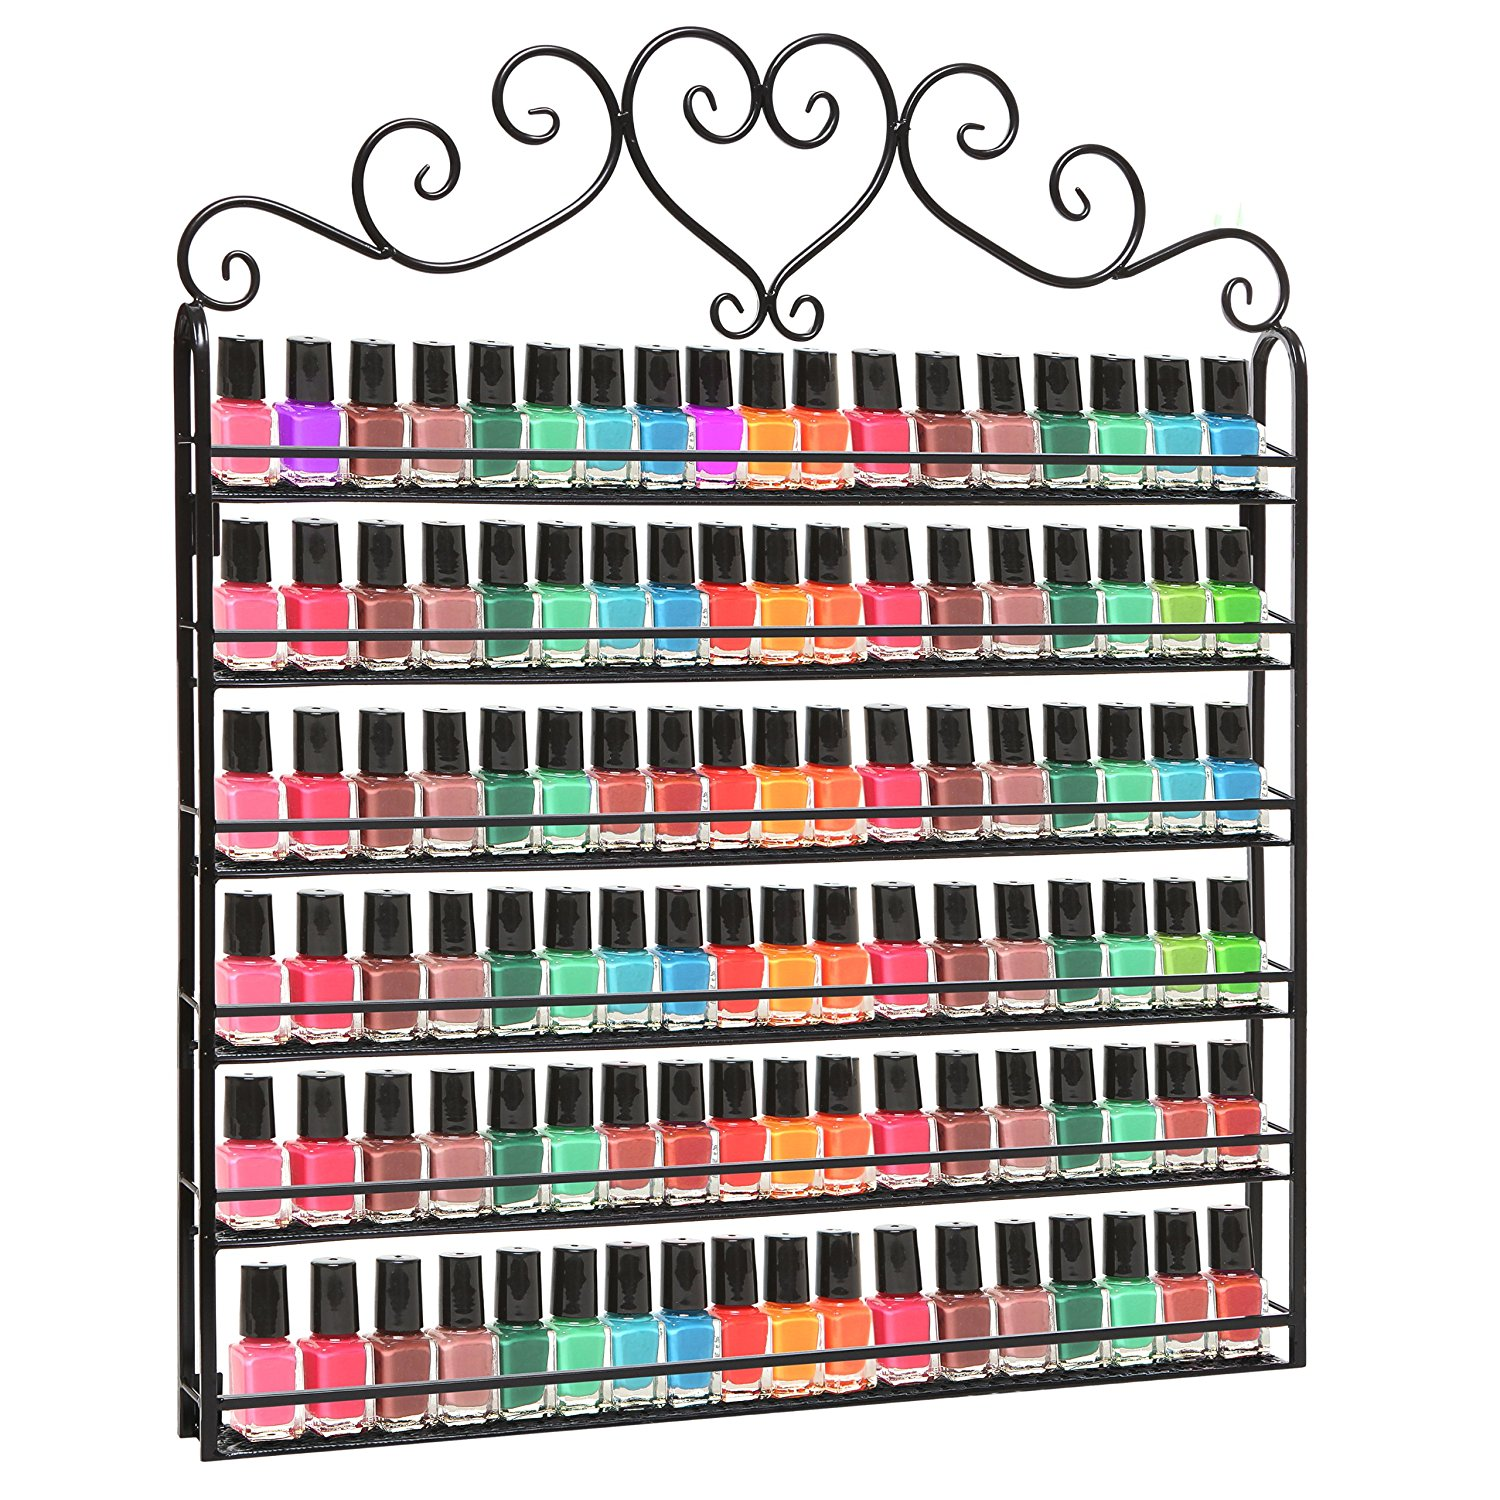 Nail Polish Organizer That Holds Over 100 Bottles Of